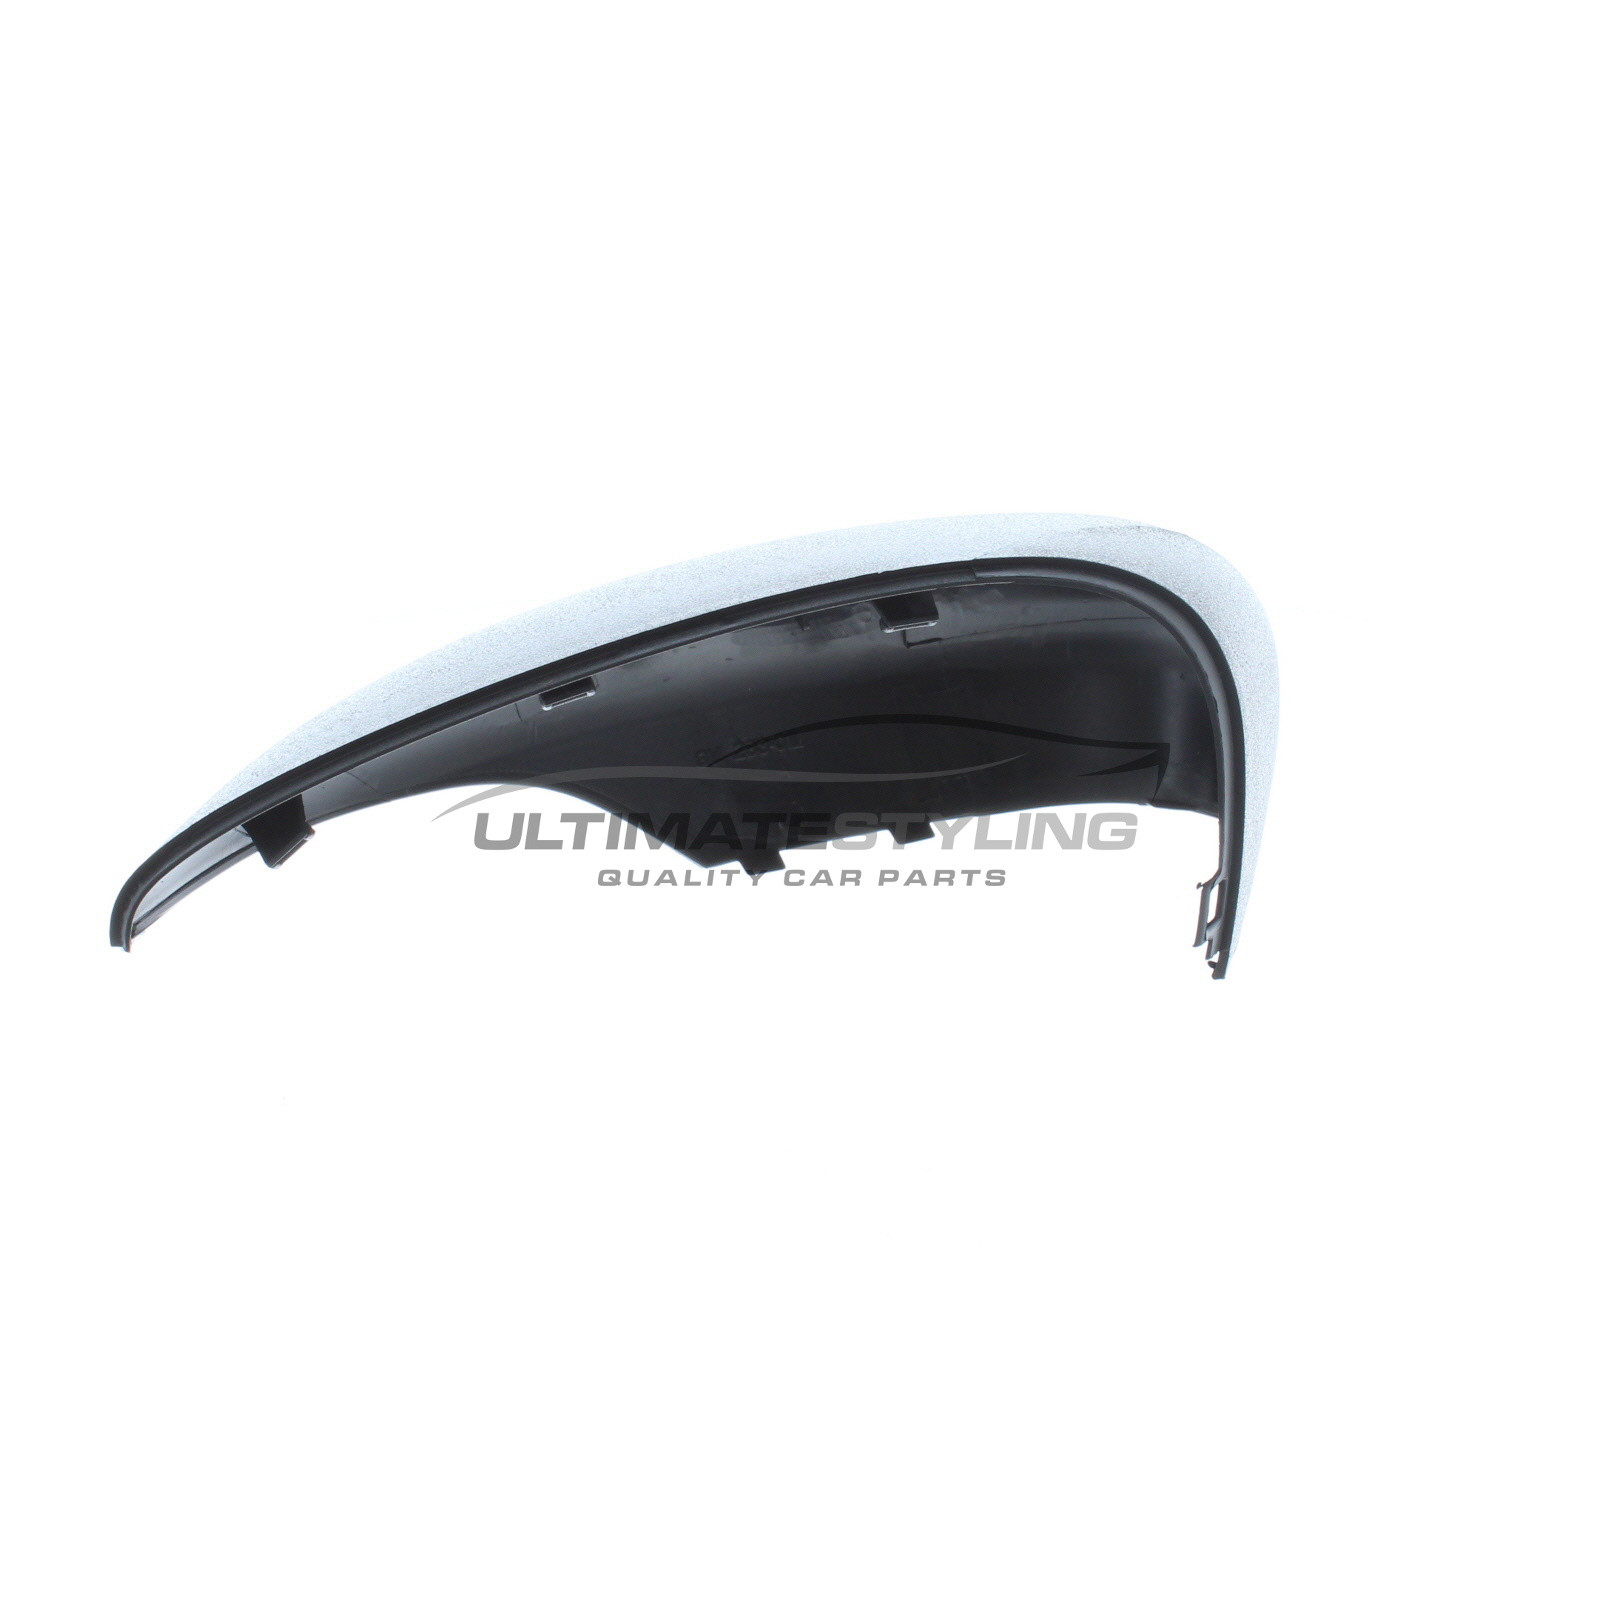 Ford Fiesta Mk7 2008-2017 B-Max 2012 Wing Mirror Cover Passenger Side Primed